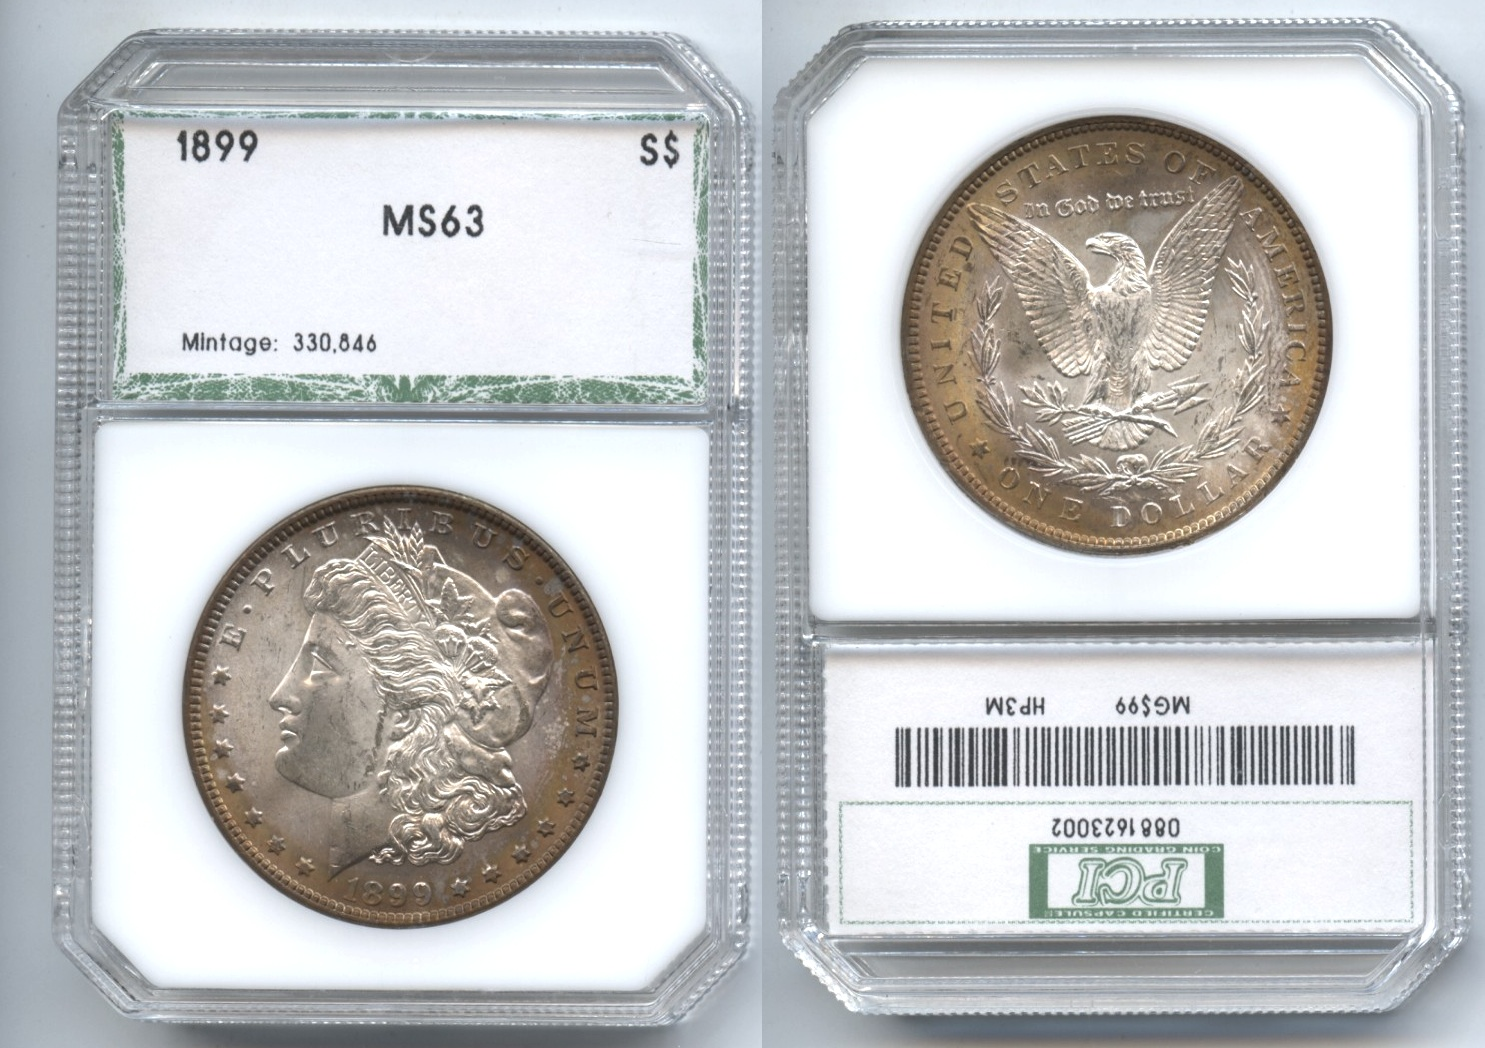 1899 Morgan Silver Dollar PCI MS-63